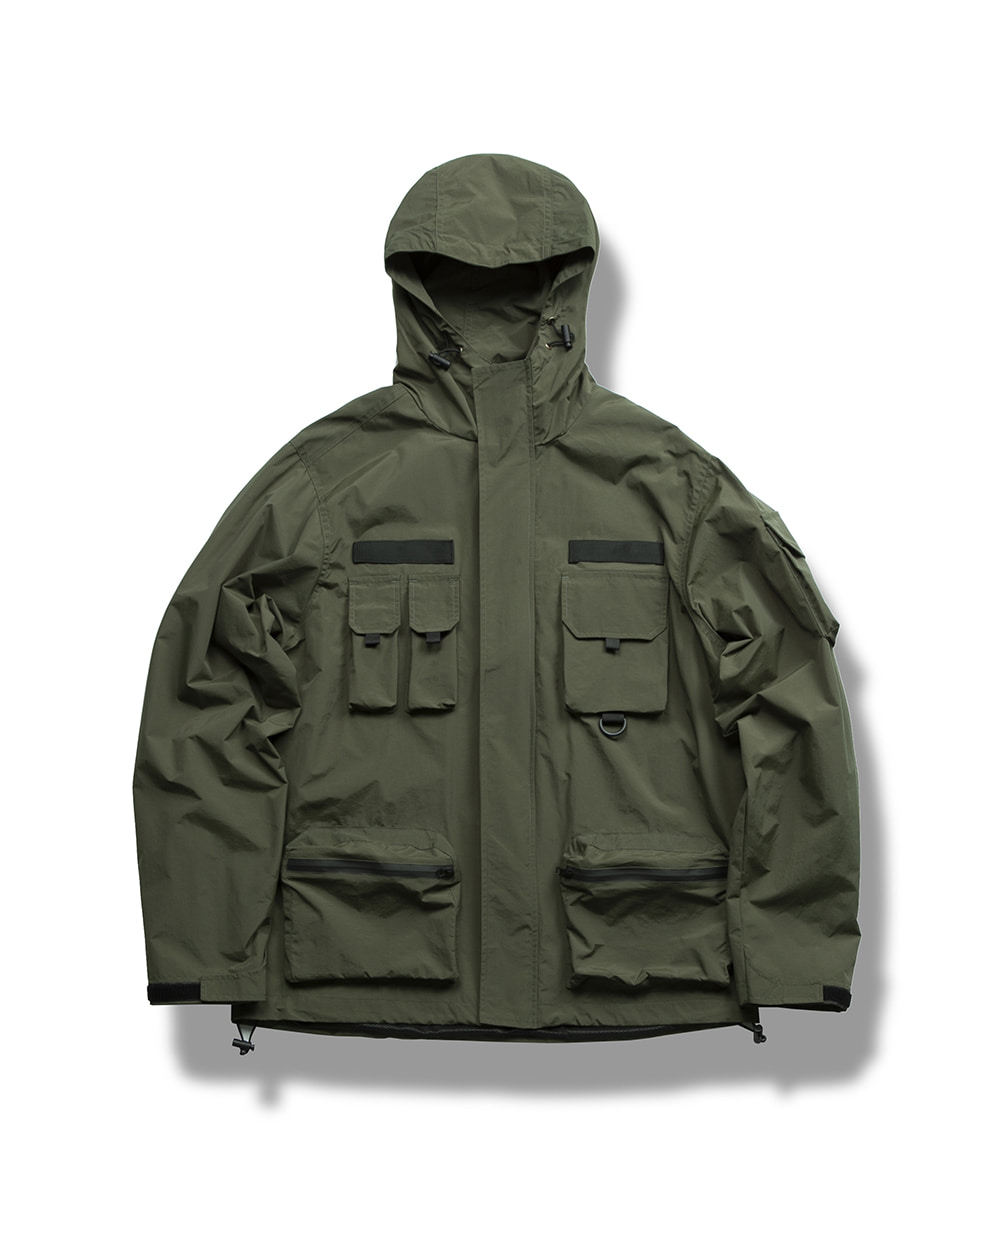 WATERPROOF WIND JACKET OLIVE